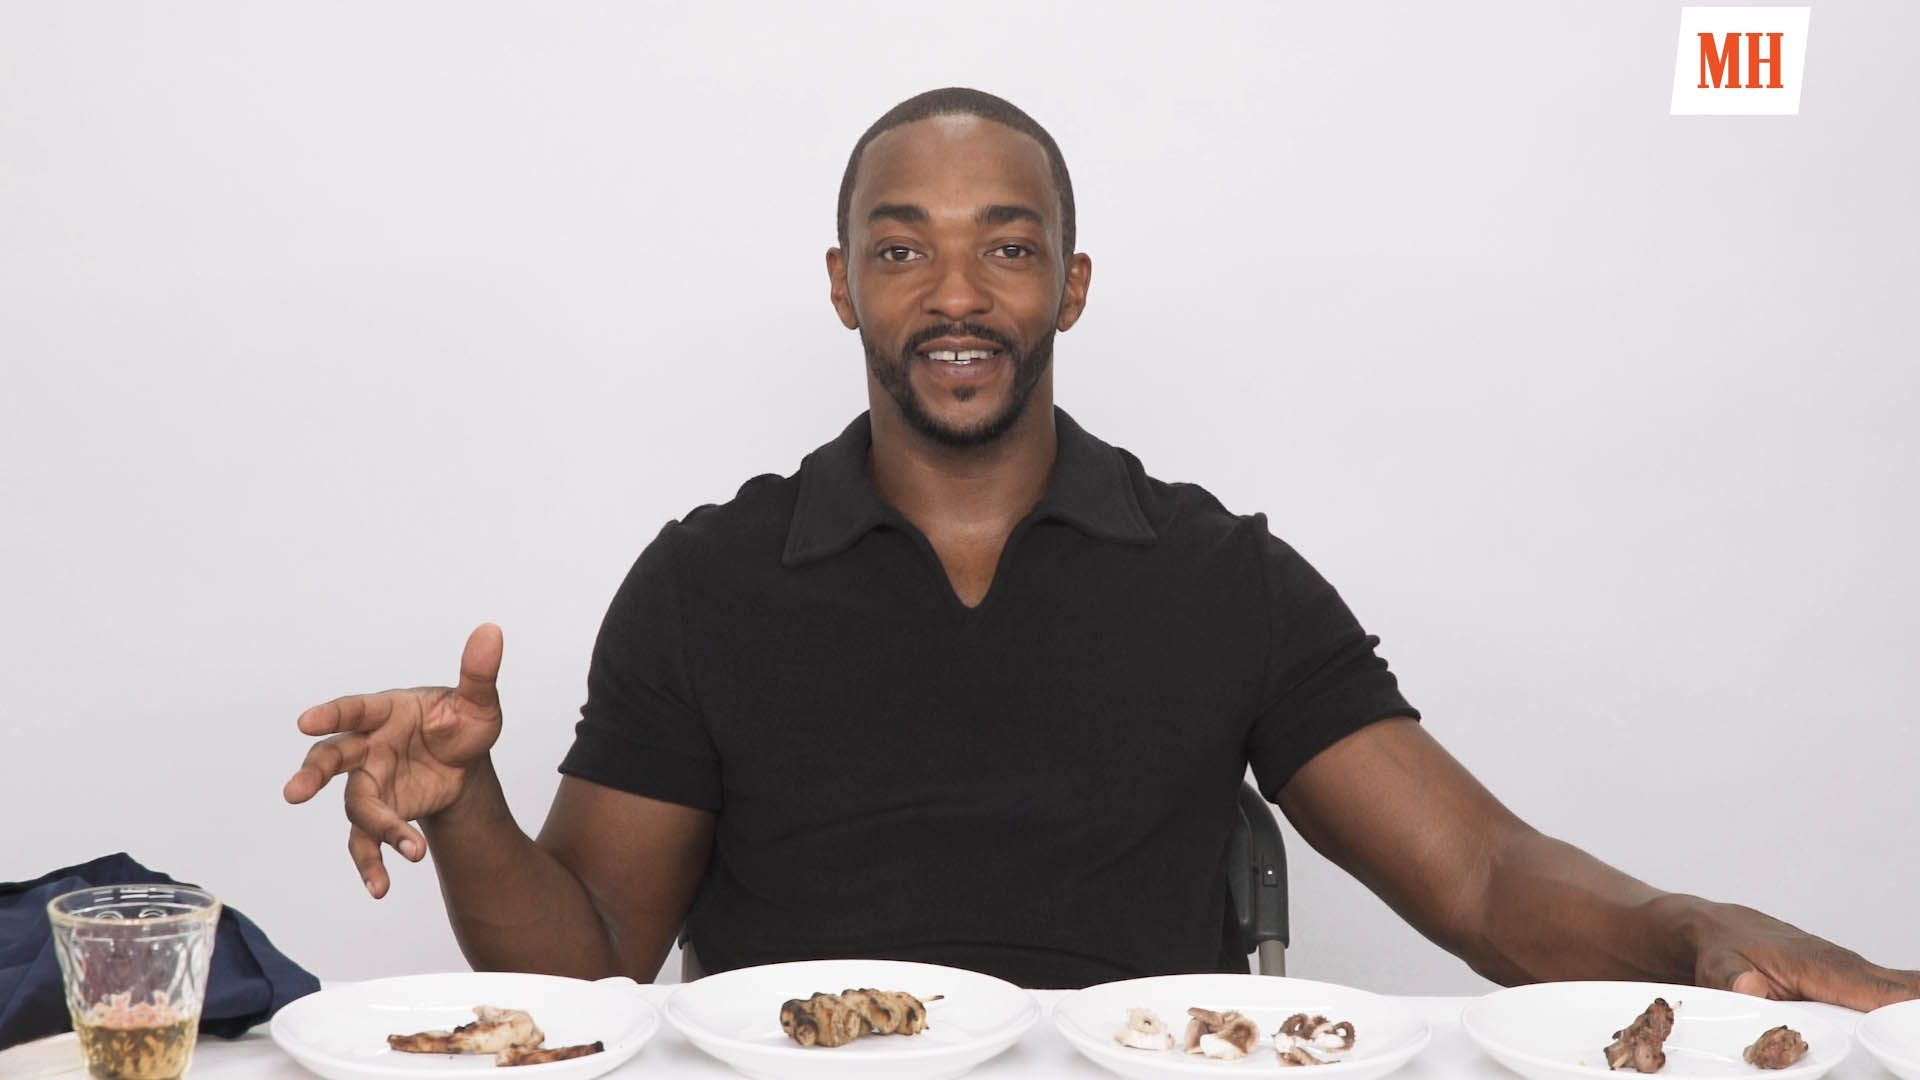 Anthony Mackie Must Eat Worms or Tell Us About the Captain America Sequels